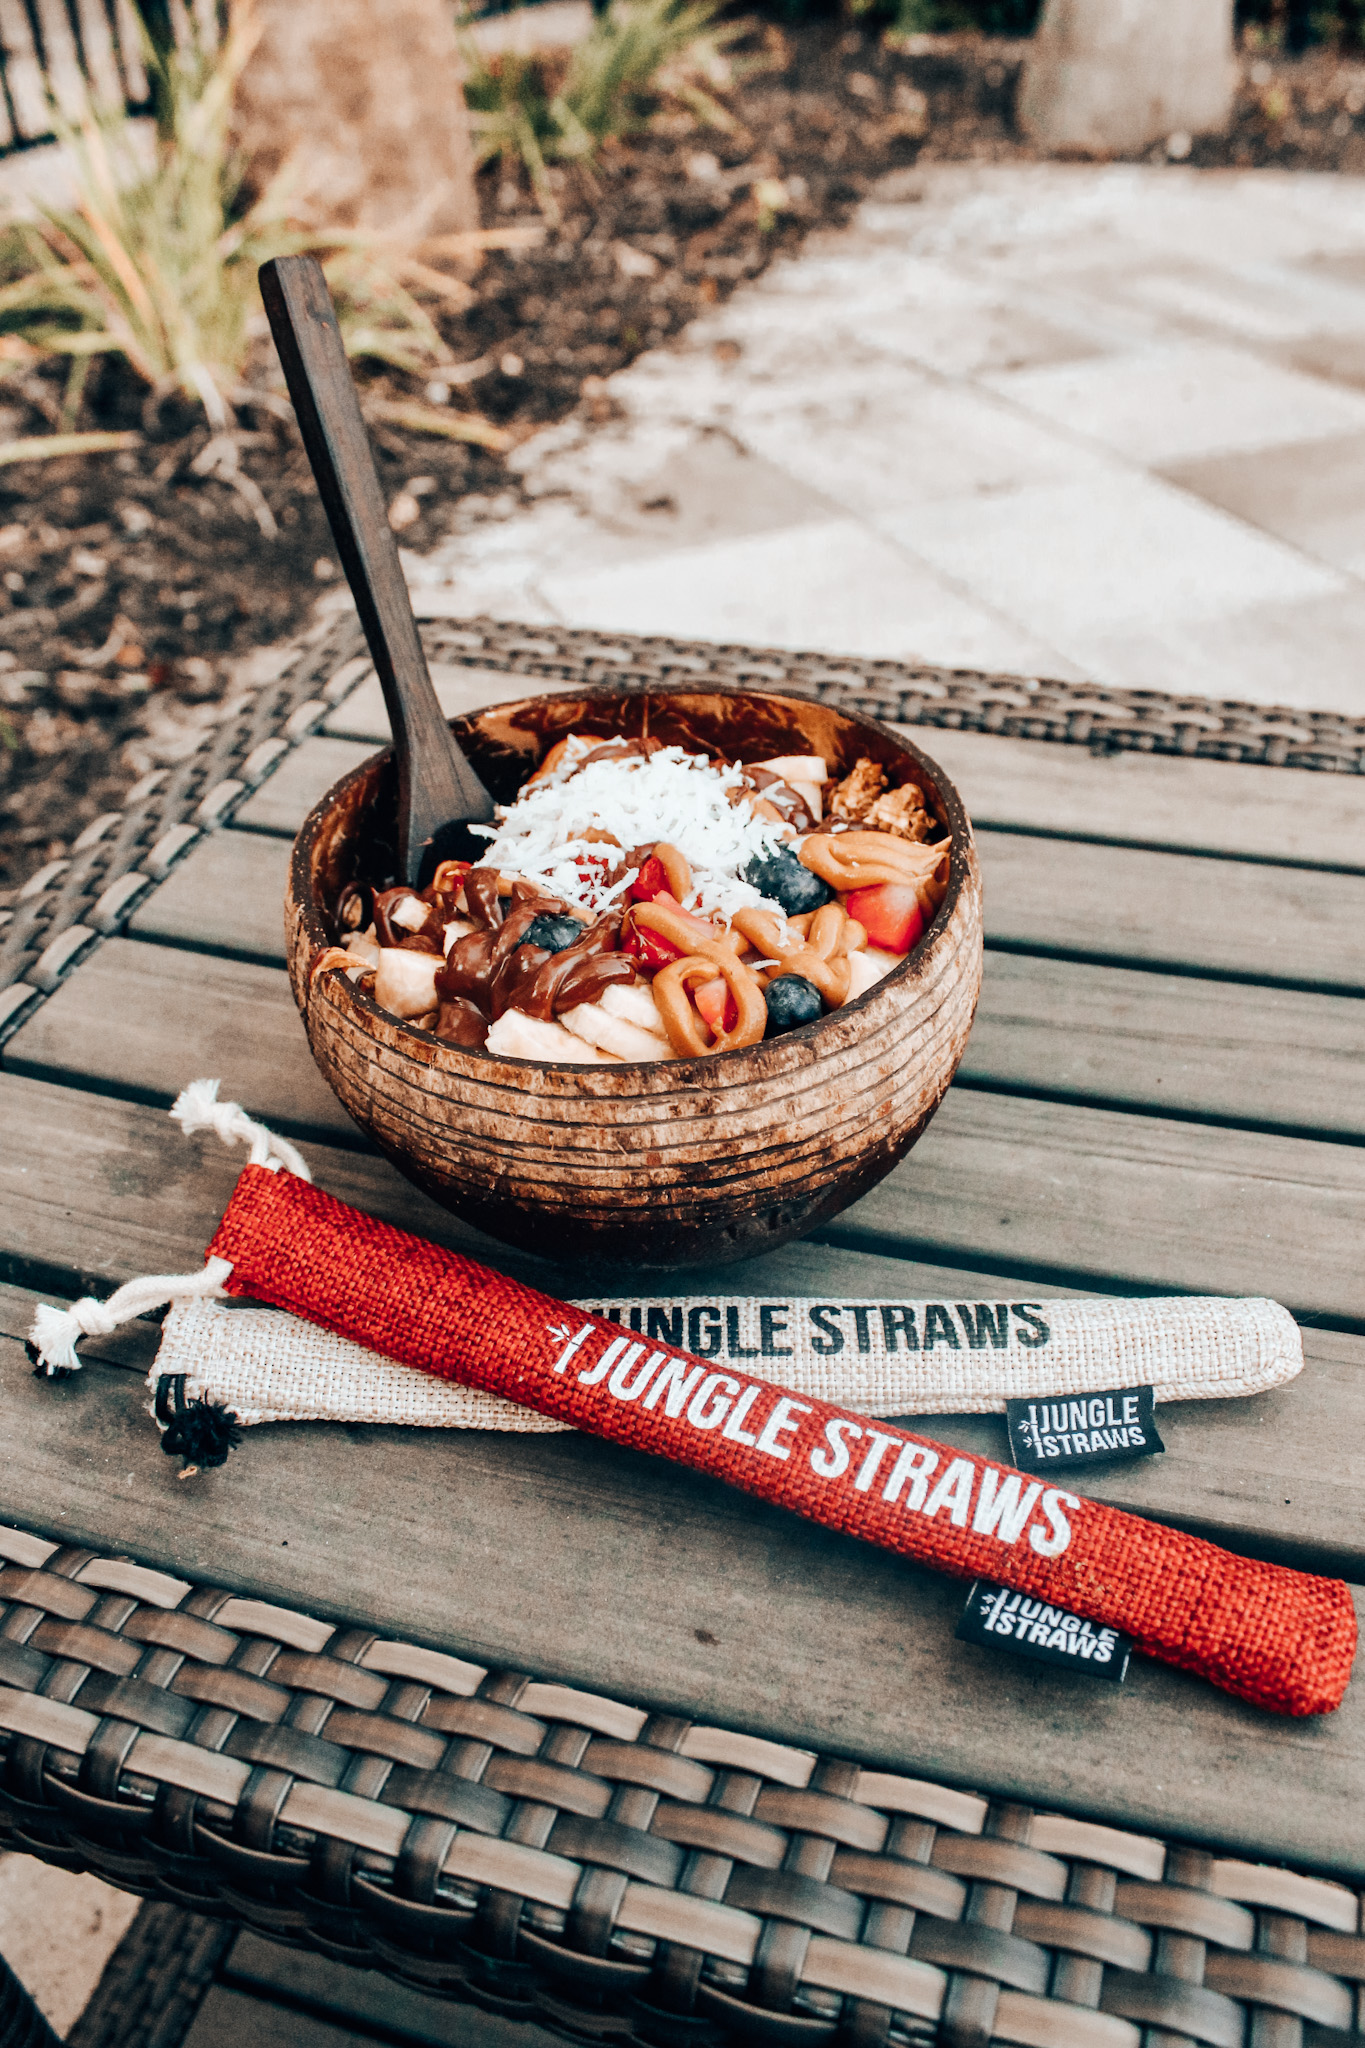 Jungle Culture's coconut bowls and wooden utensils